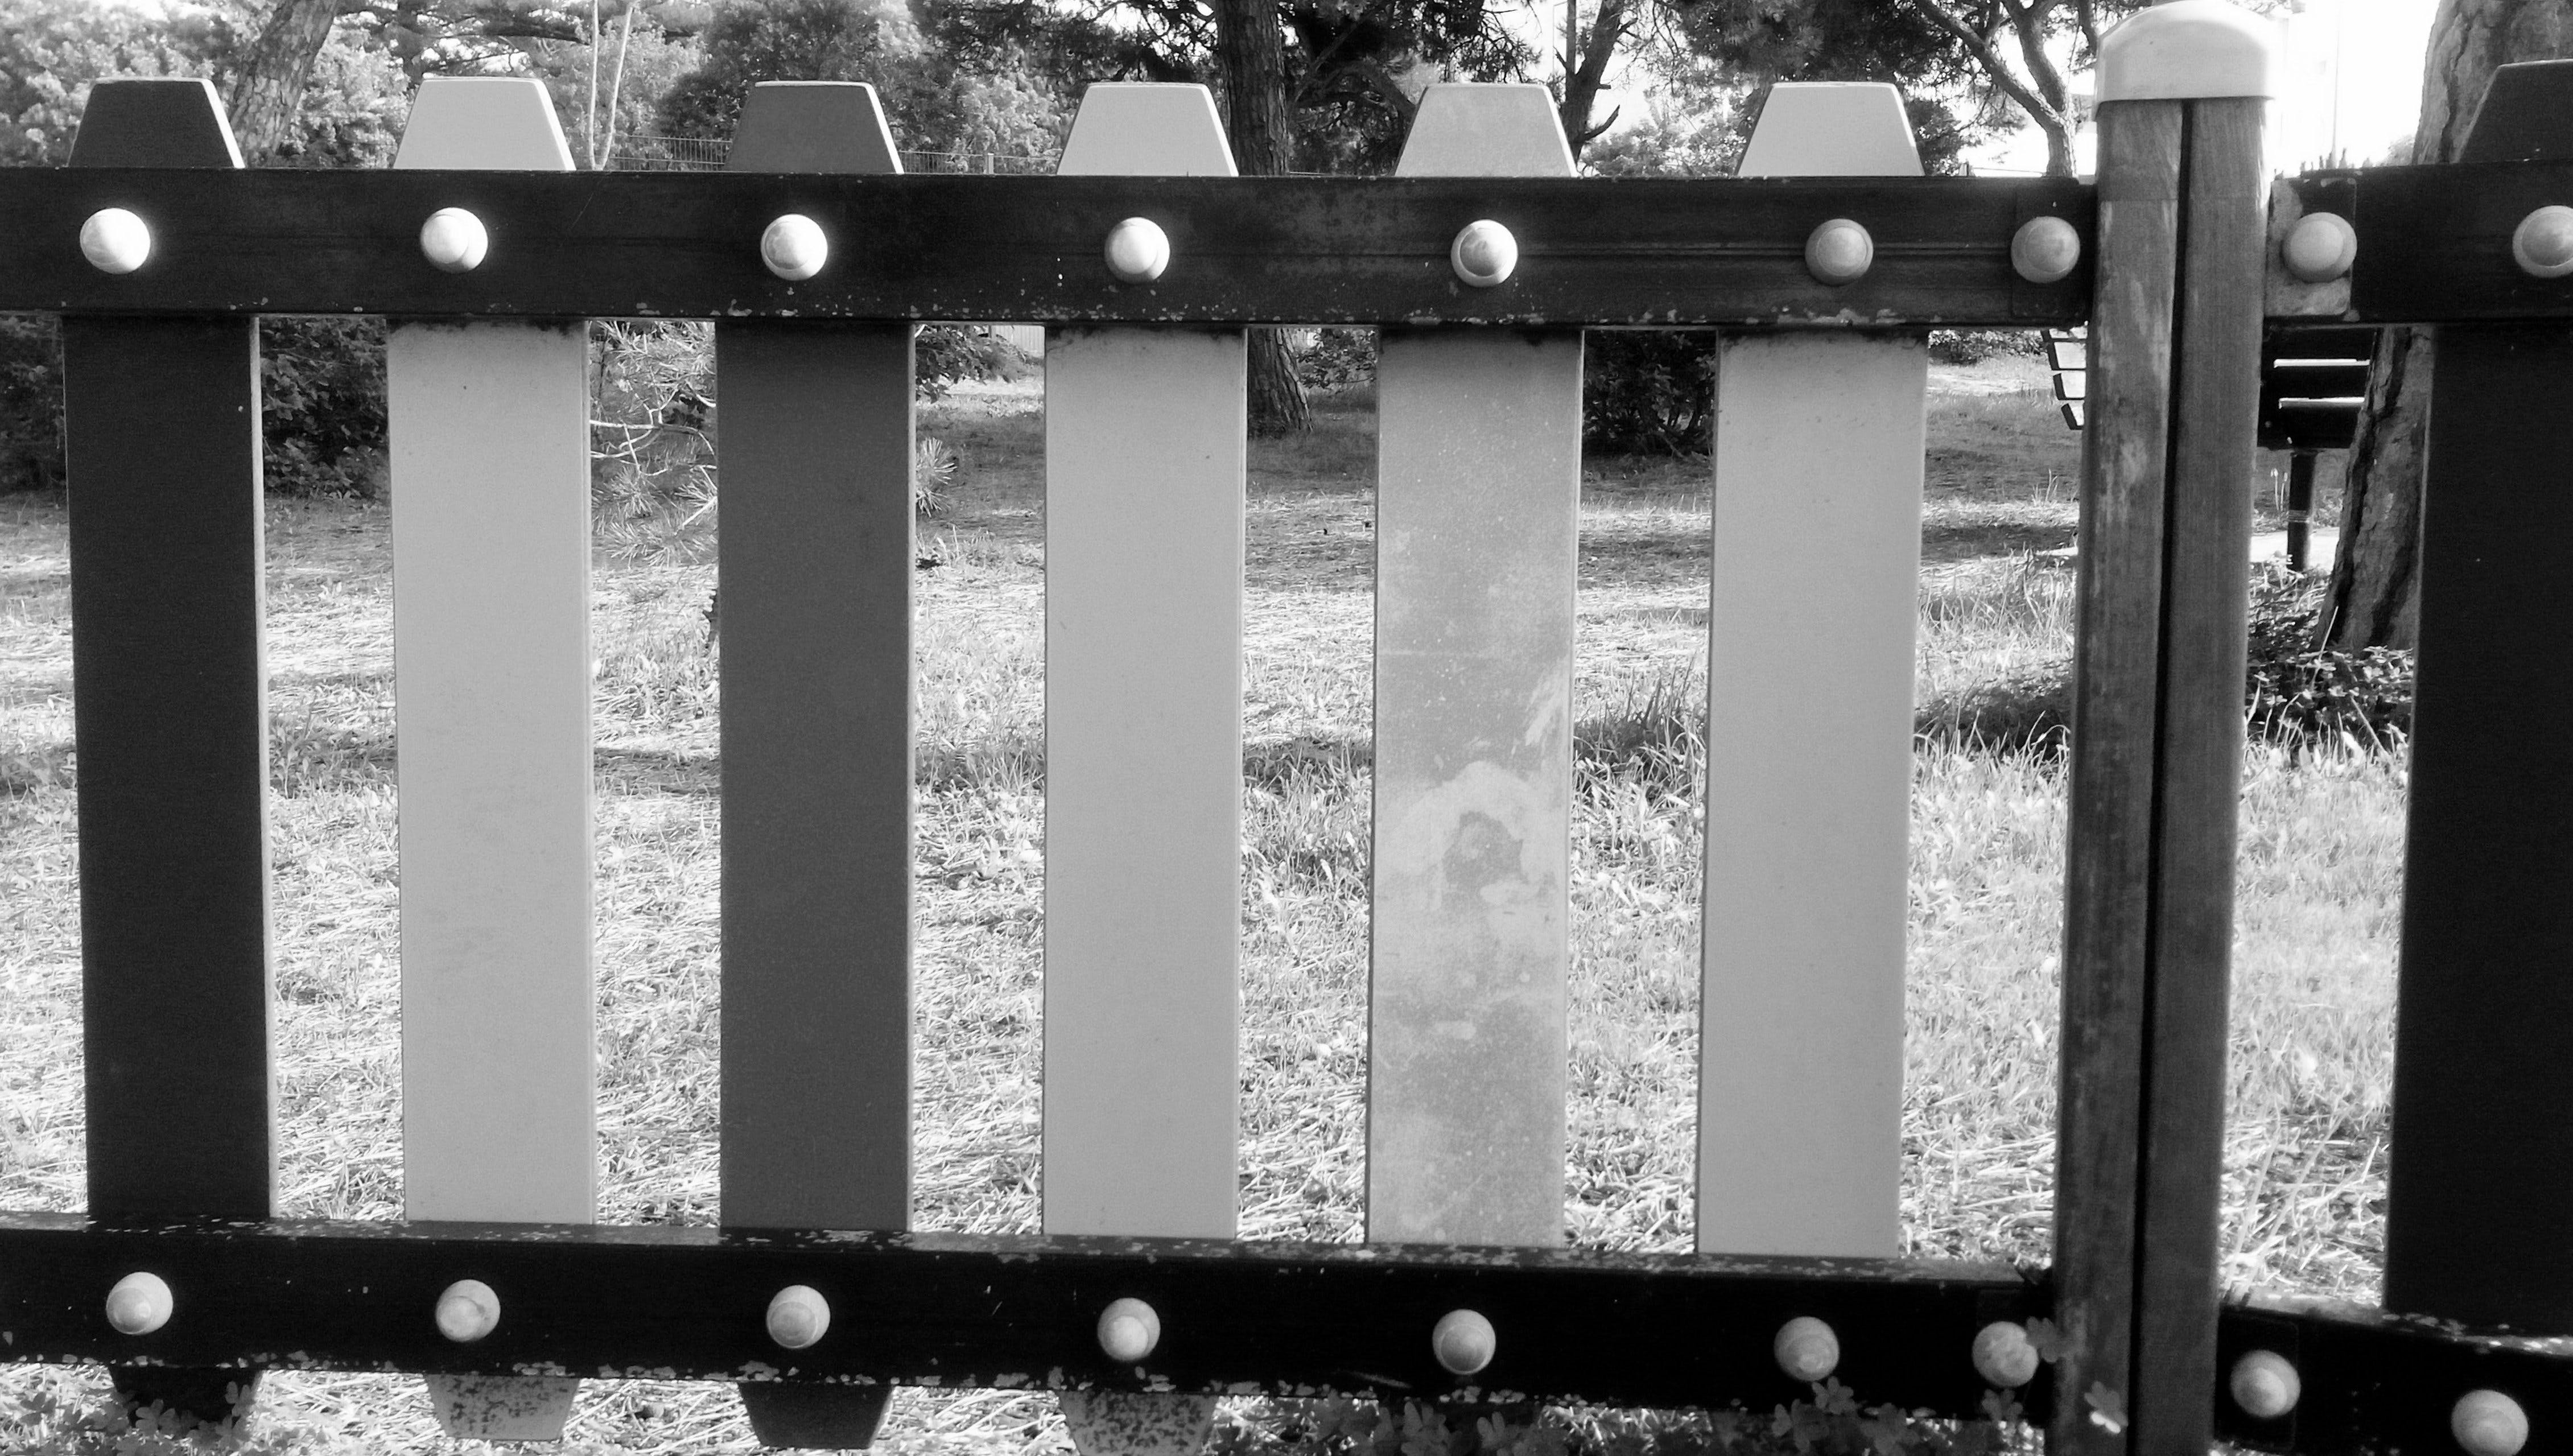 Free stock photo of barricade, barrier, black and white, enclosure